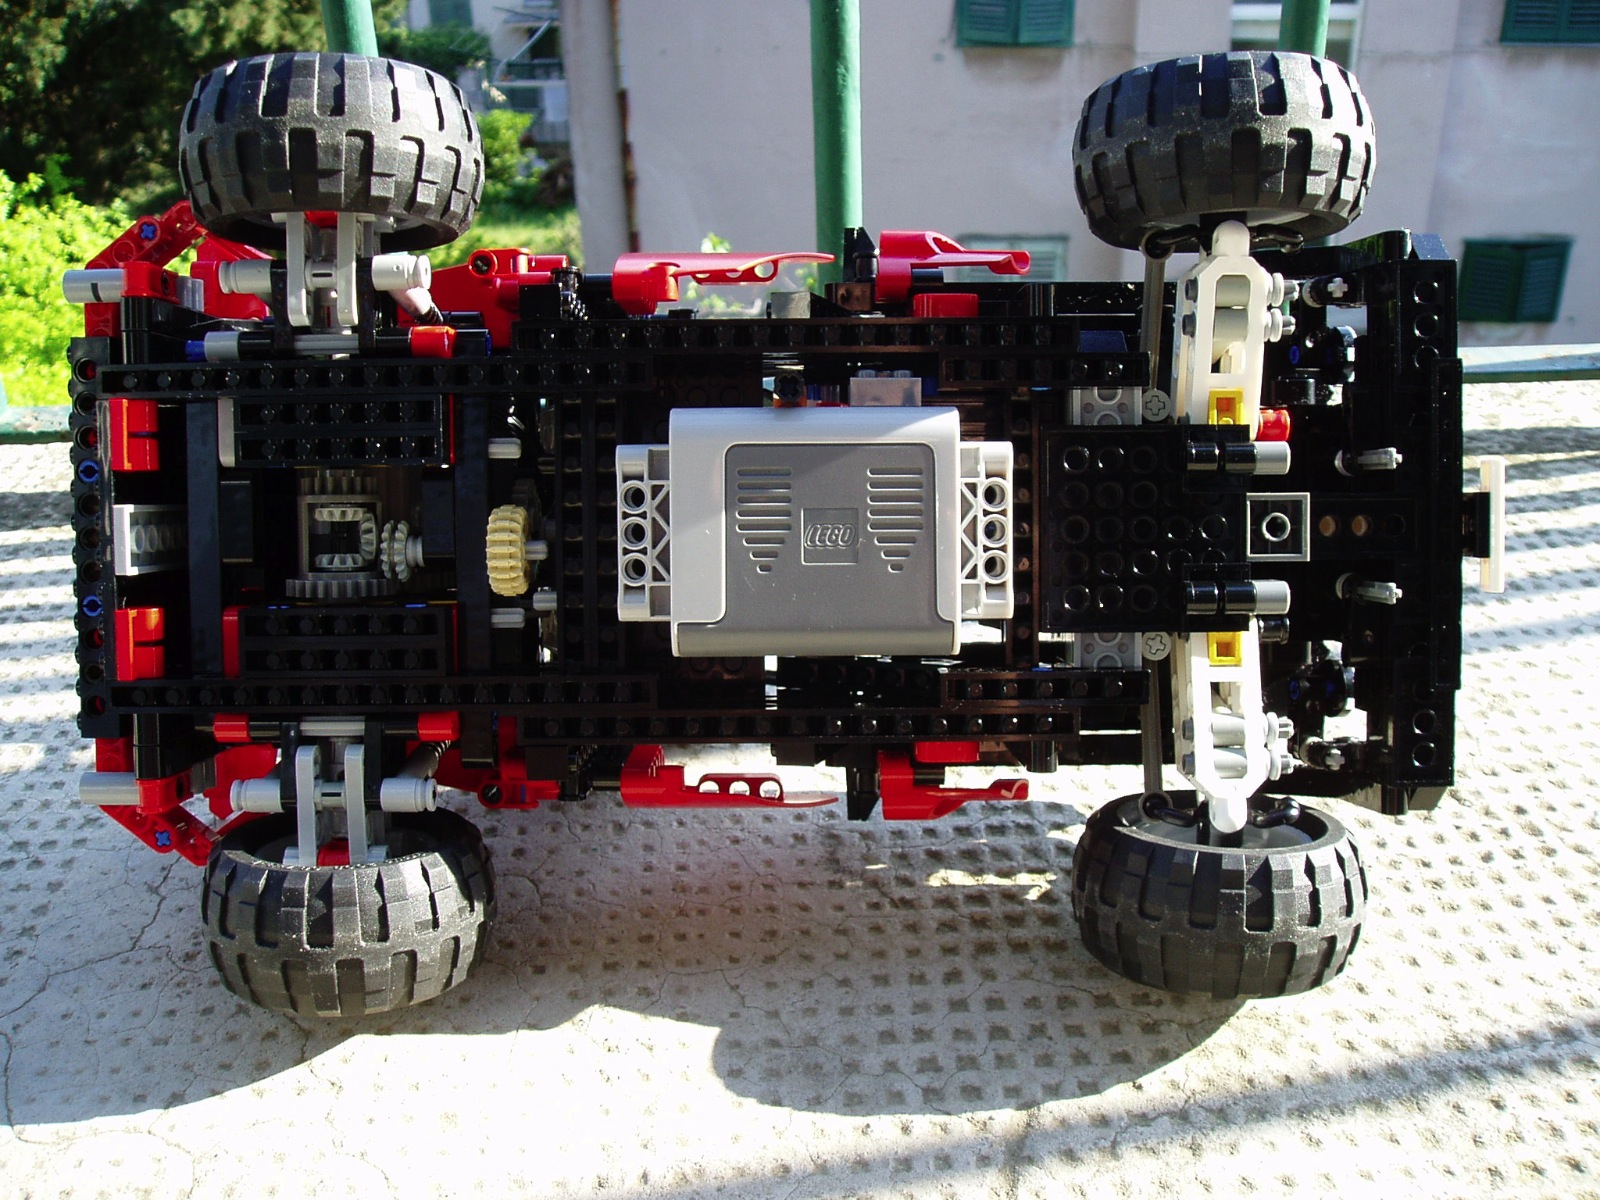 4lords Black Two Seater Lego Technic Car Lego Technic And Model